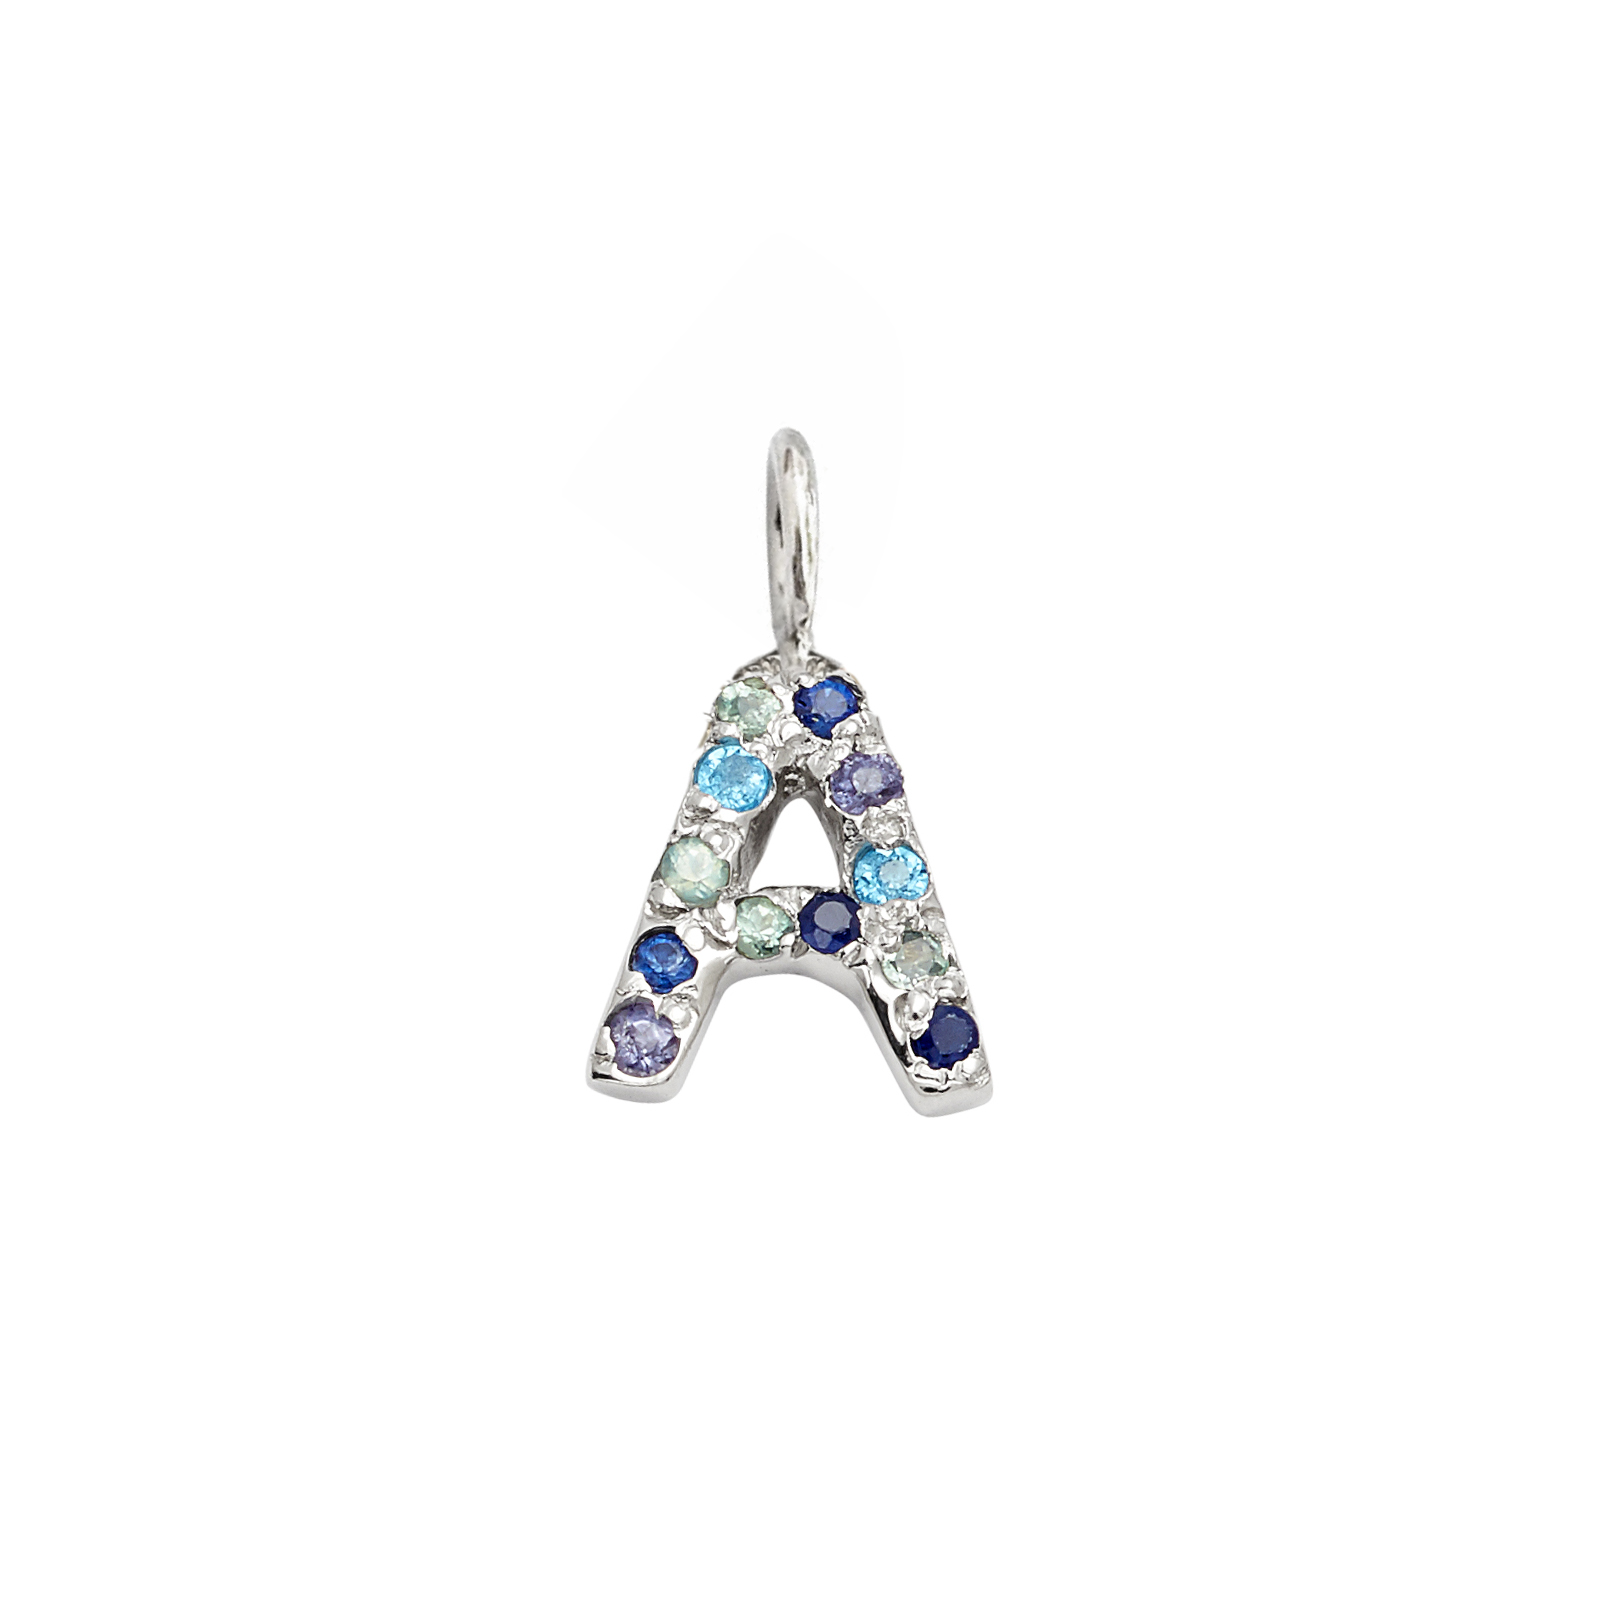 Letter Charm Pendant with Blue Hue Gems in 14k White Gold